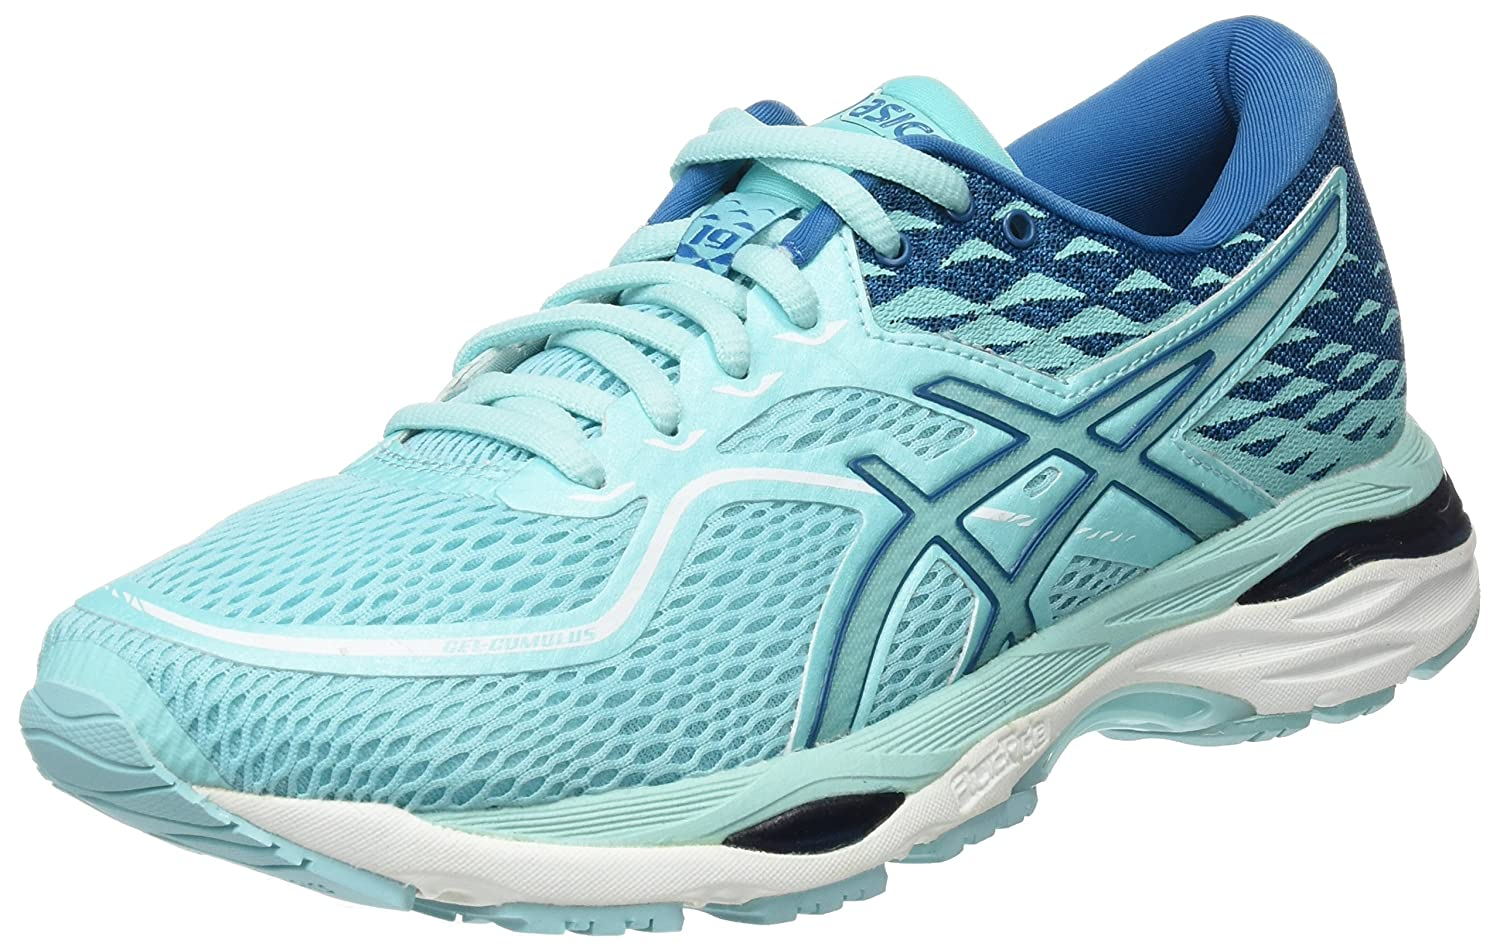 ASICS Gel-Cumulus 19 Womens Running Trainers T7B8N Sneakers Shoes (UK 6.5  US 8.5 EU 40.5, Aruba Blue Turkish Tile 8888)